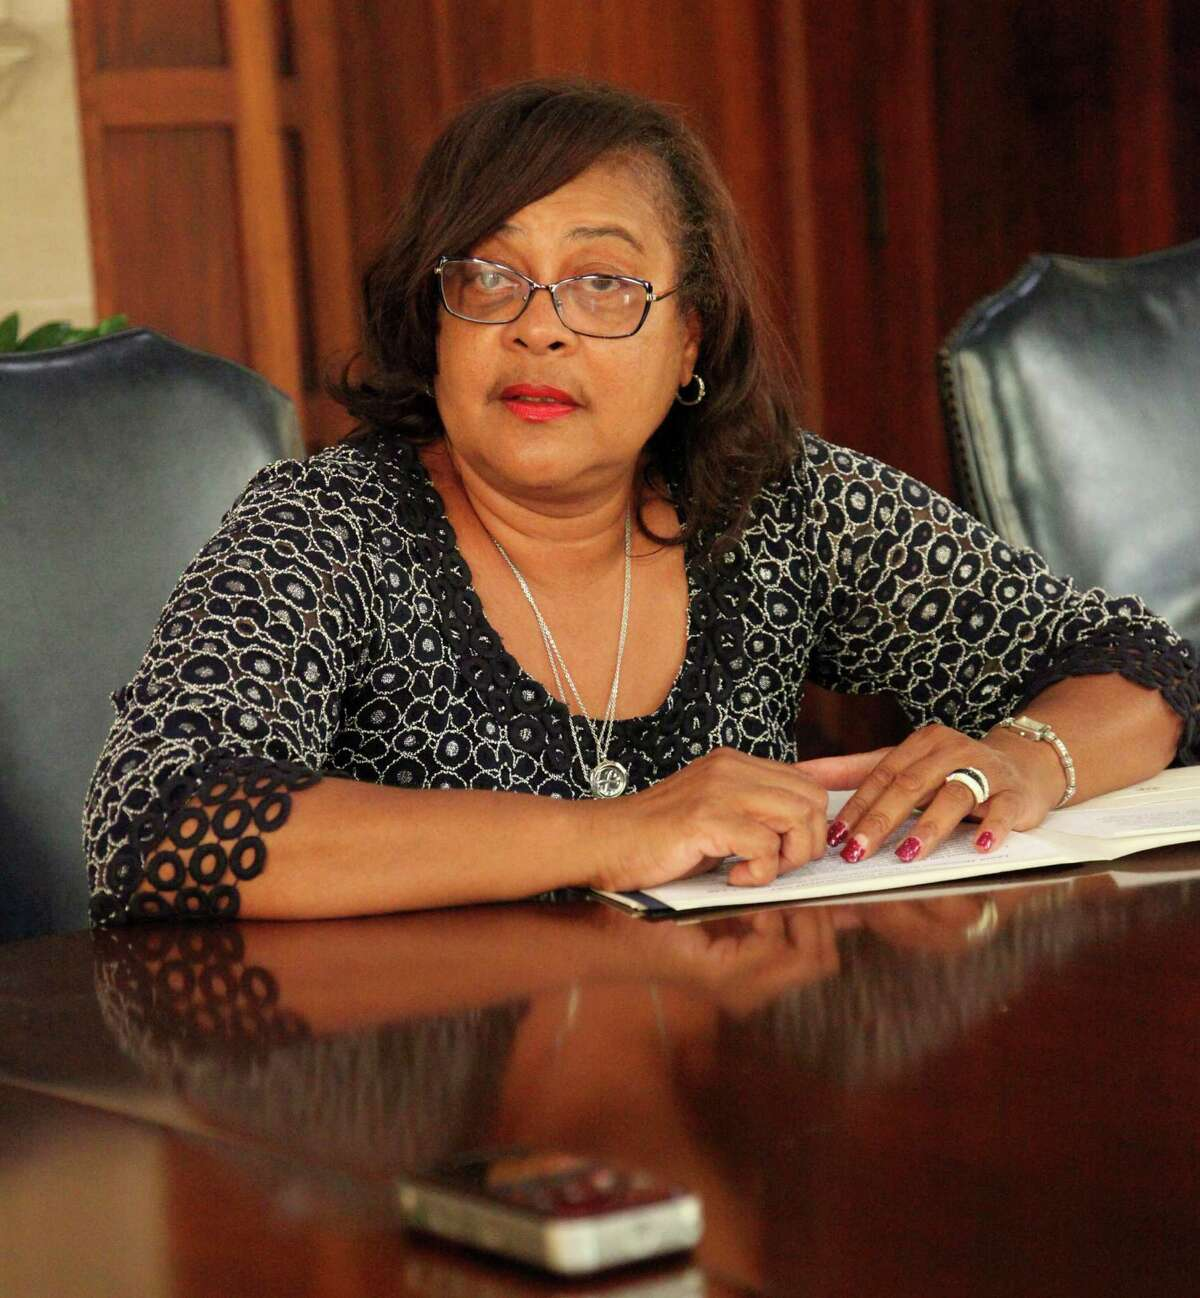 Rep. Laura Thompson won a special election to fill the unexpired term of Ruth Jones McClendon. A judge ruled Thursday Thompson's name can stay on the ballot for November's election after the Bexar County Democratic Party sued to have her removed.